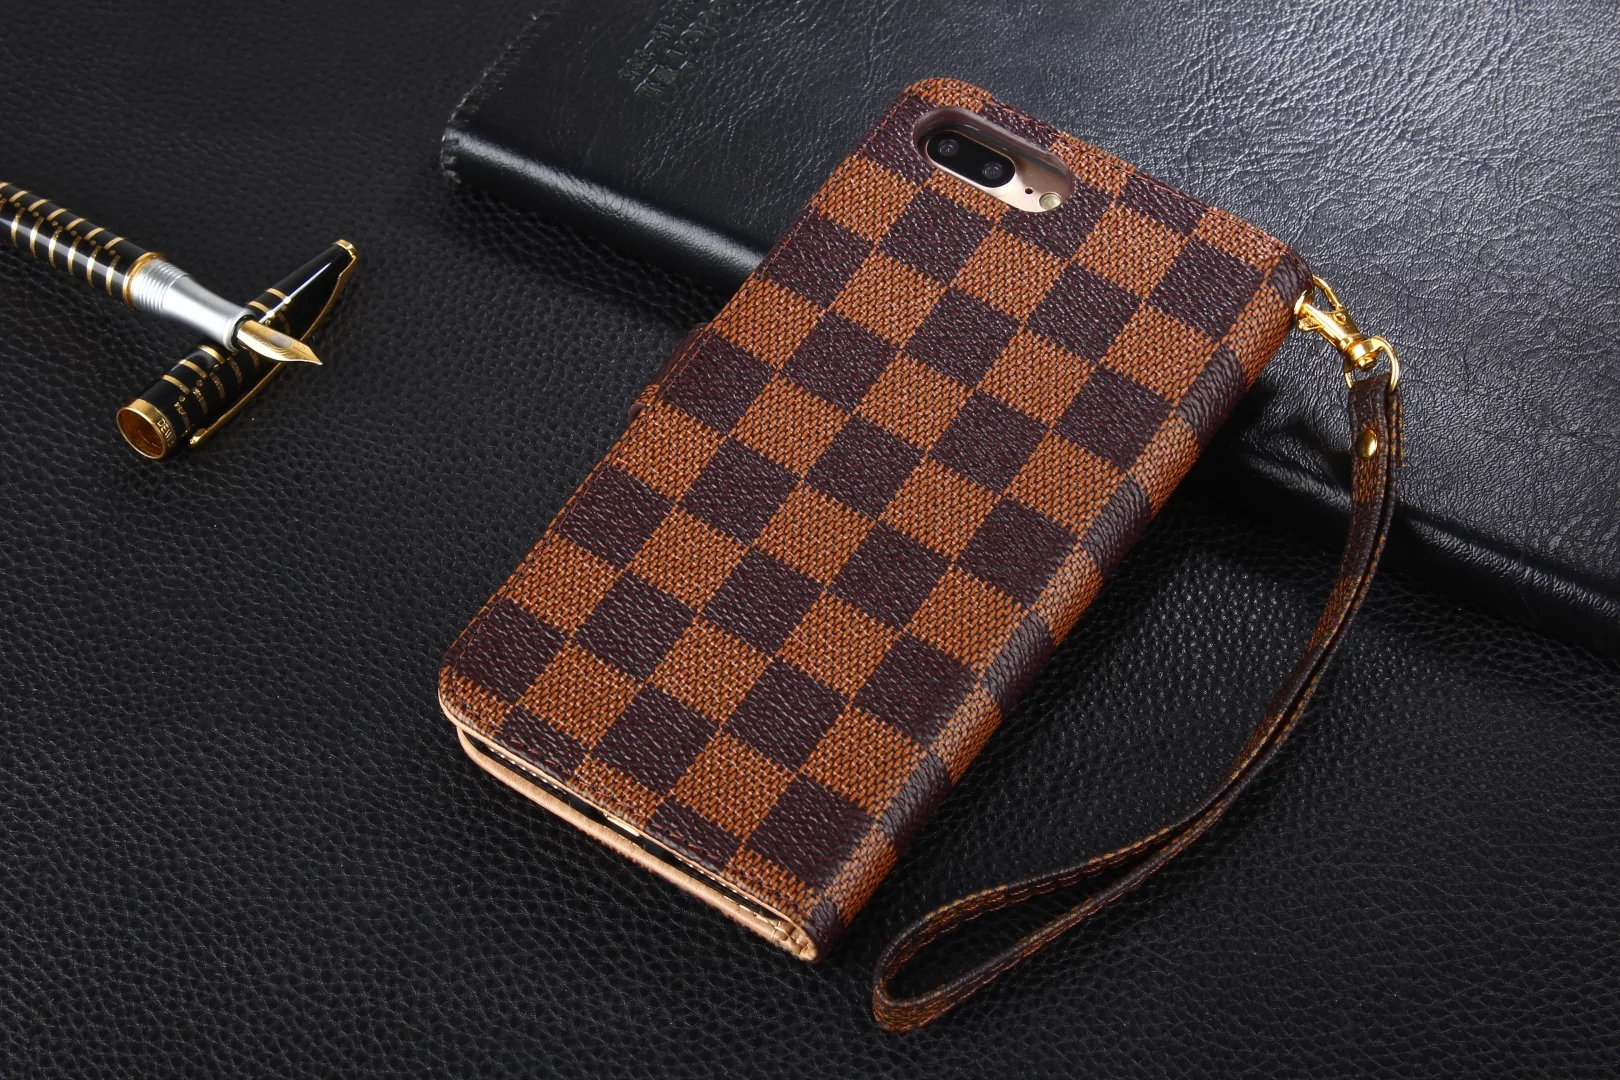 leather case for samsung S8 Plus hard case galaxy S8 Plus Louis Vuitton Galaxy S8 Plus case galaxy S8 Plus custom cases glaxsy S8 Plus galaxy S8 Plus s view flip cover best screen protector for galaxy S8 Plus samsung S8 Plus hard case best accessories for samsung galaxy S8 Plus